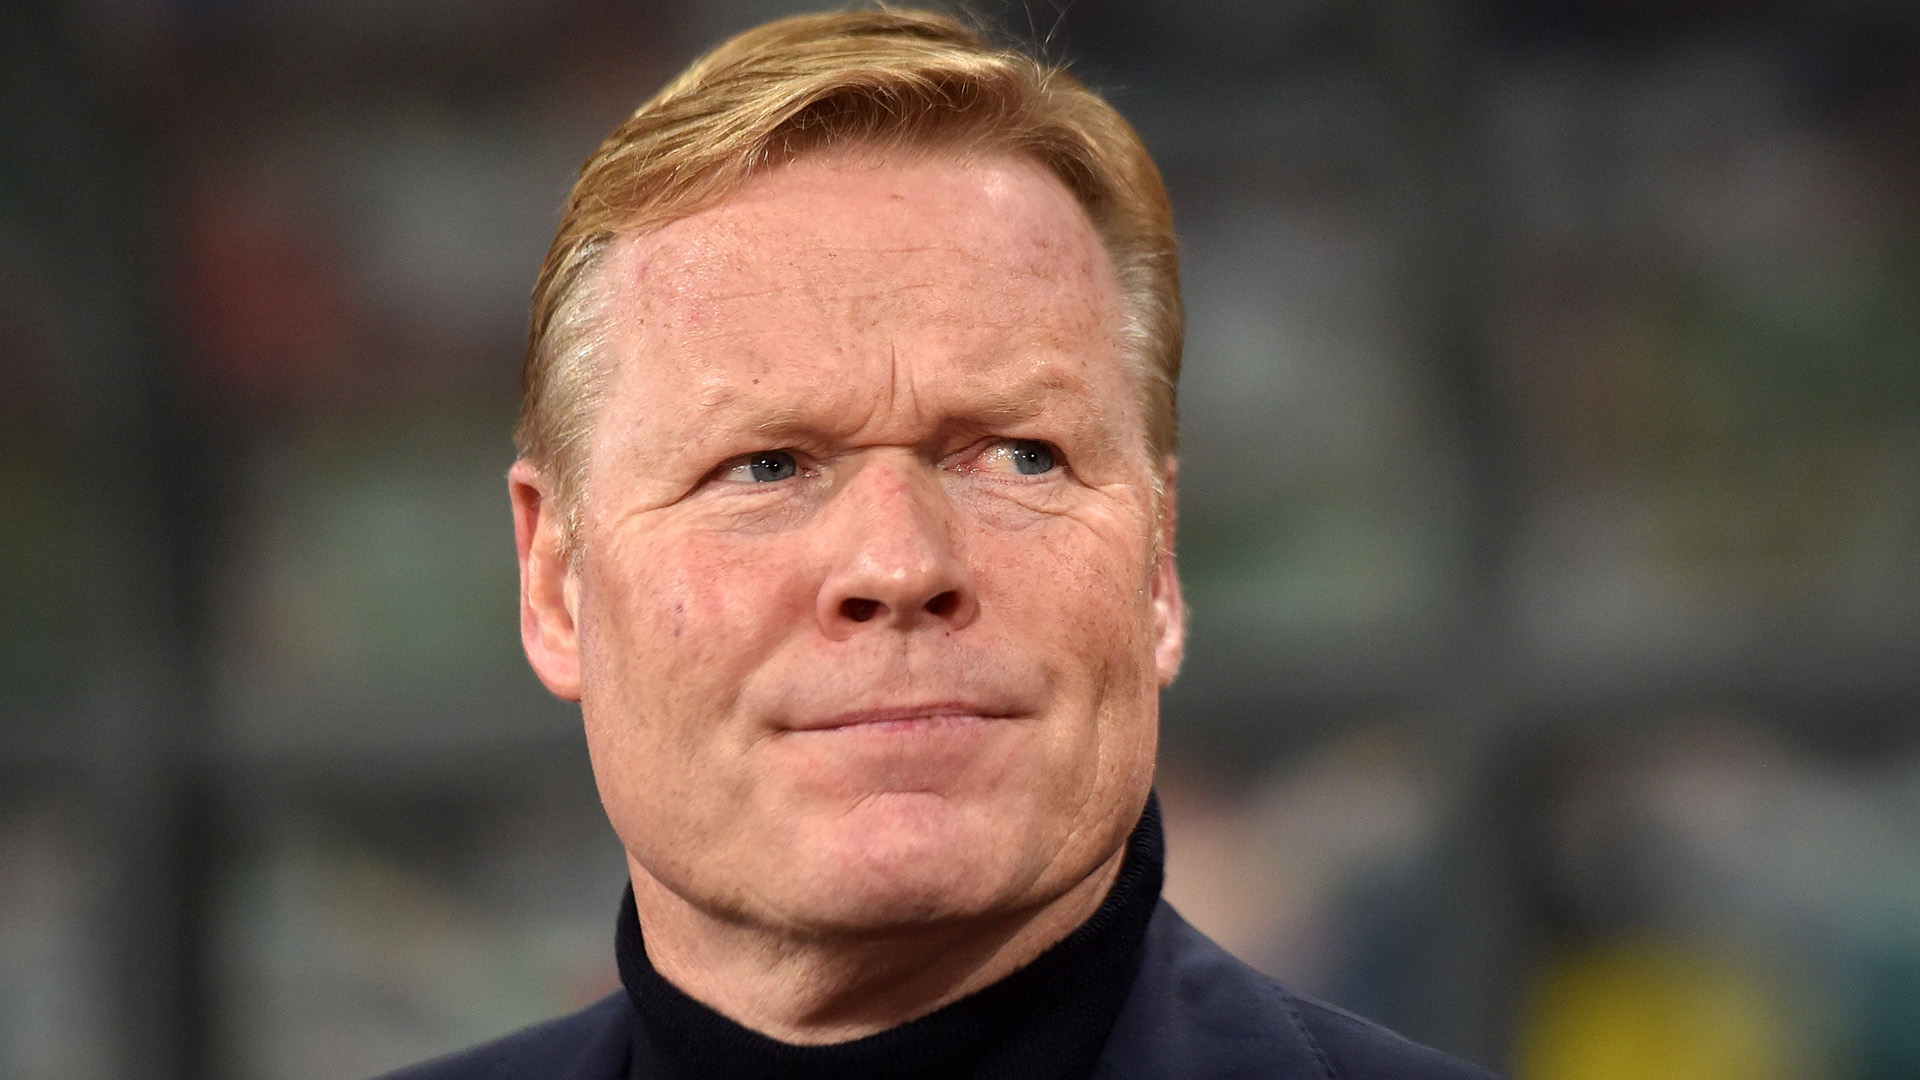 Football: Ronald Koeman in hospital with heart problems